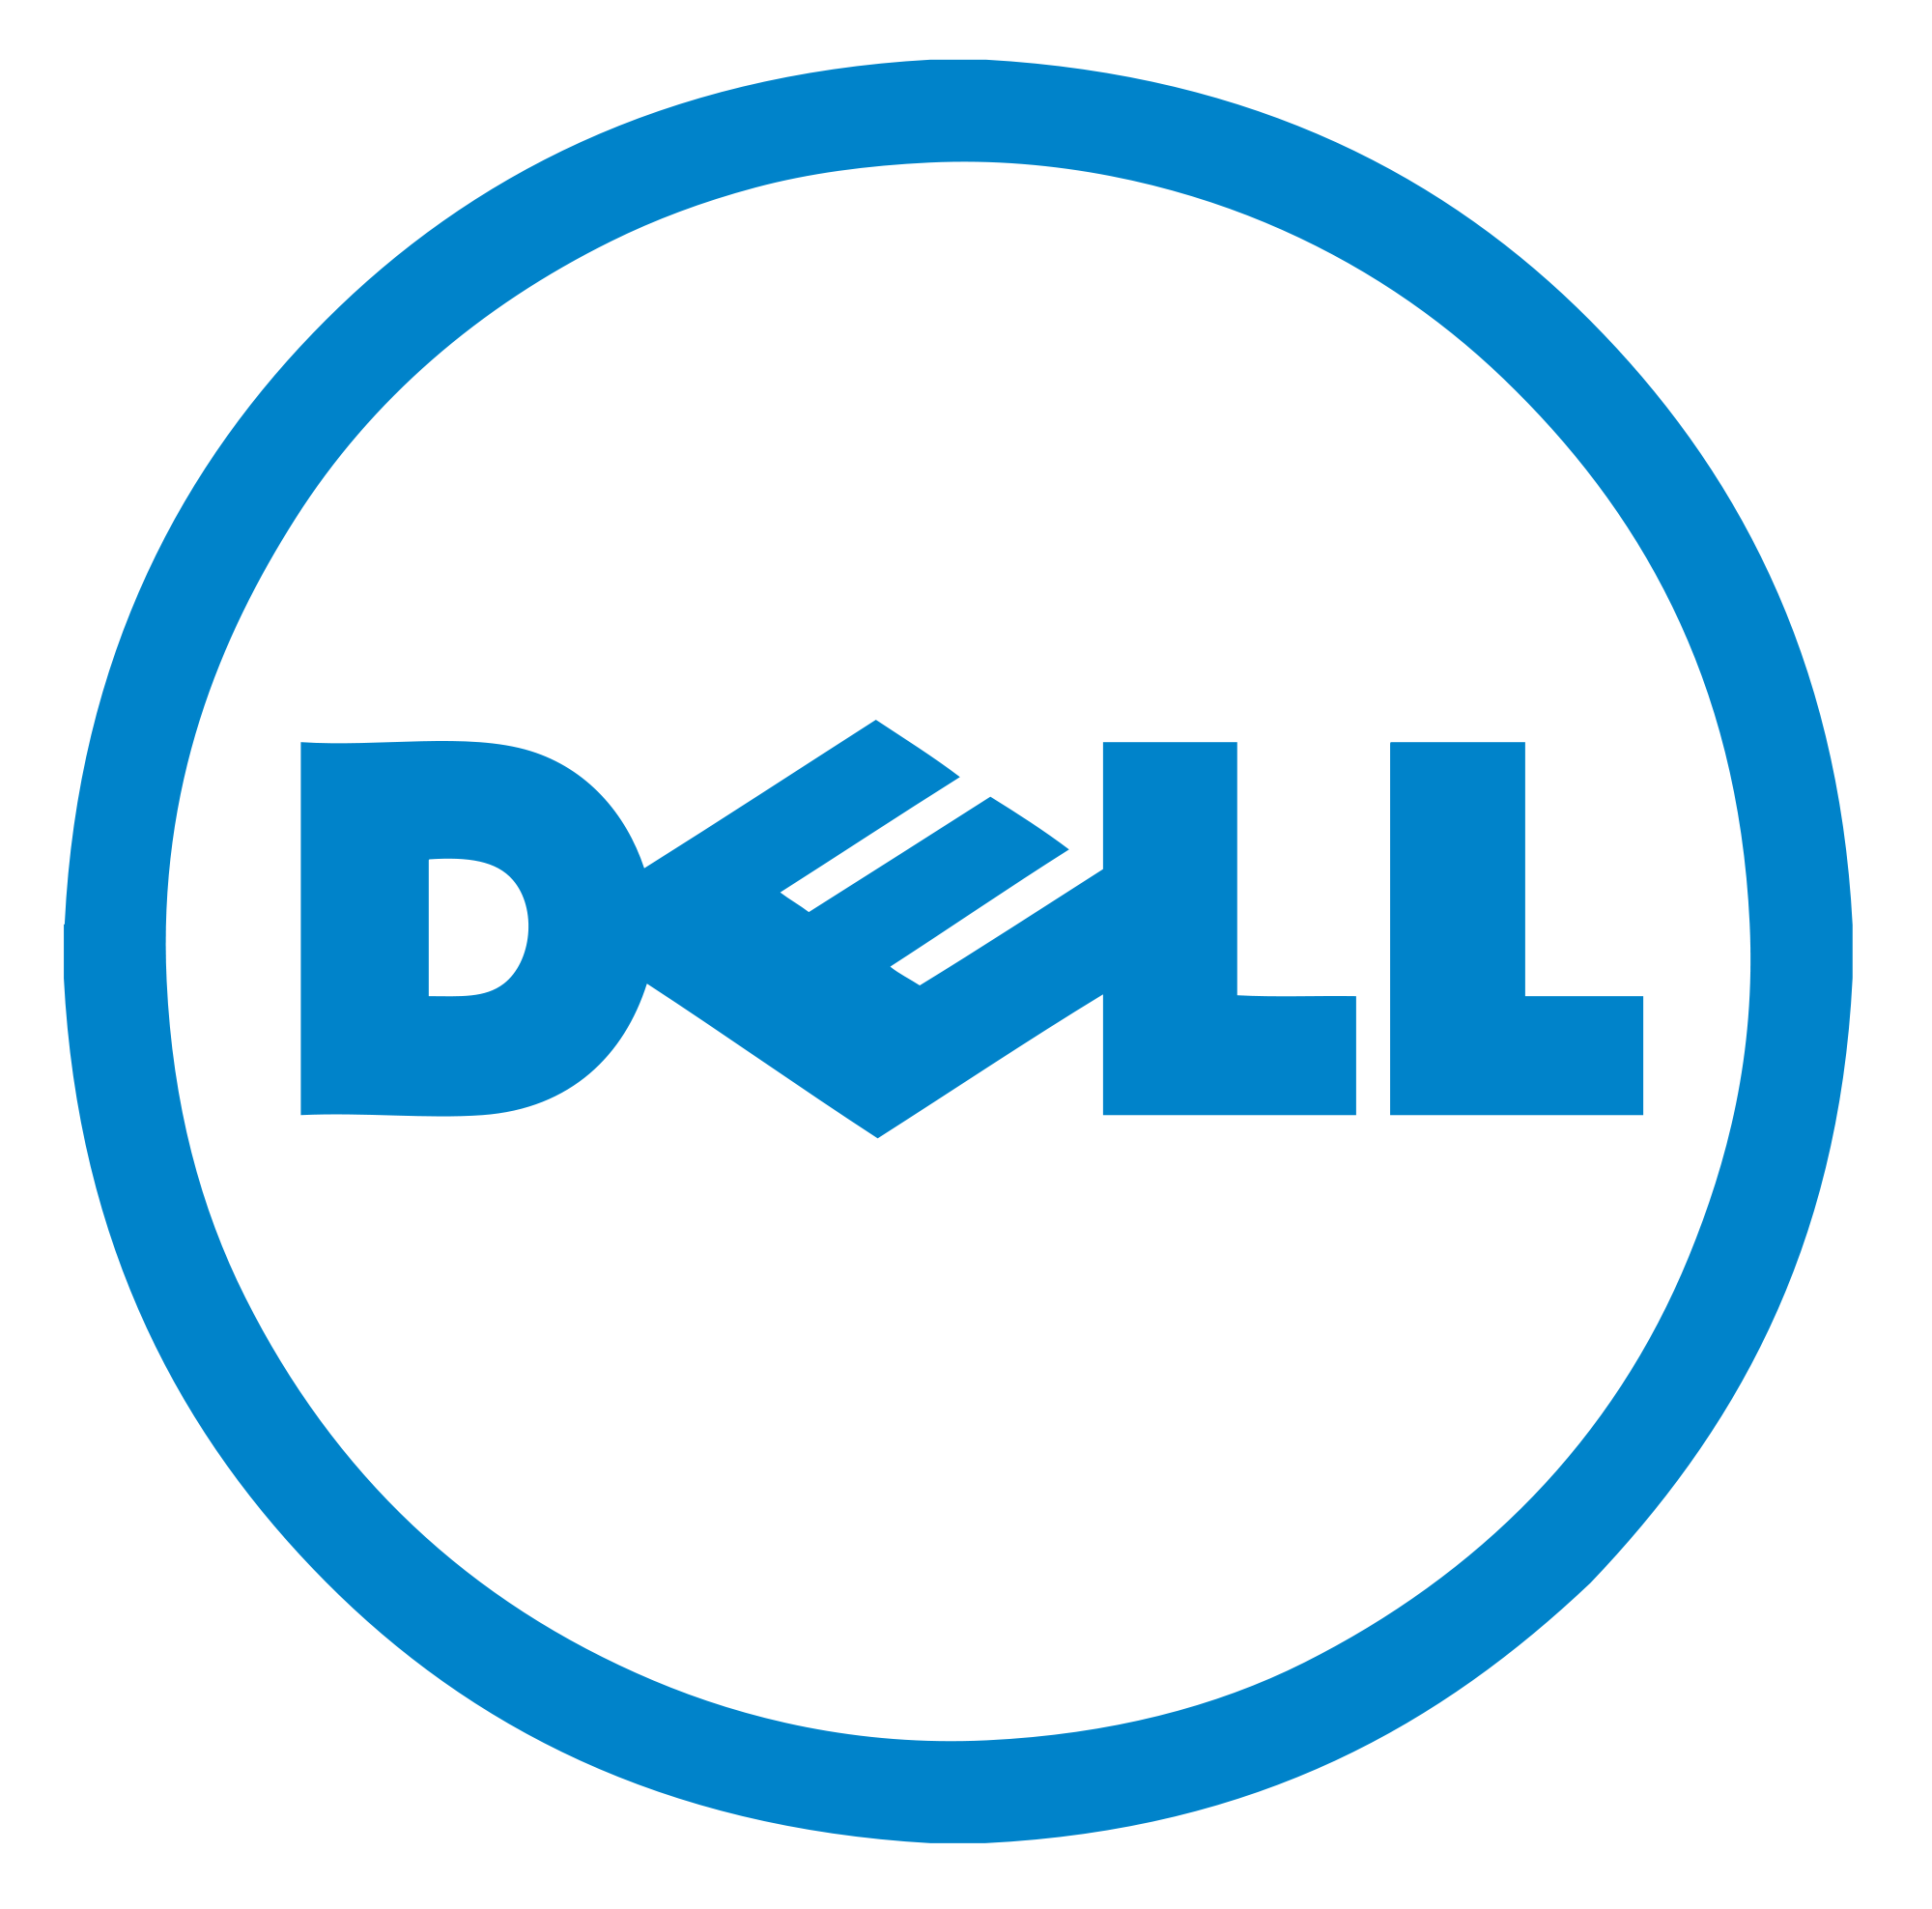 dell-windows 10